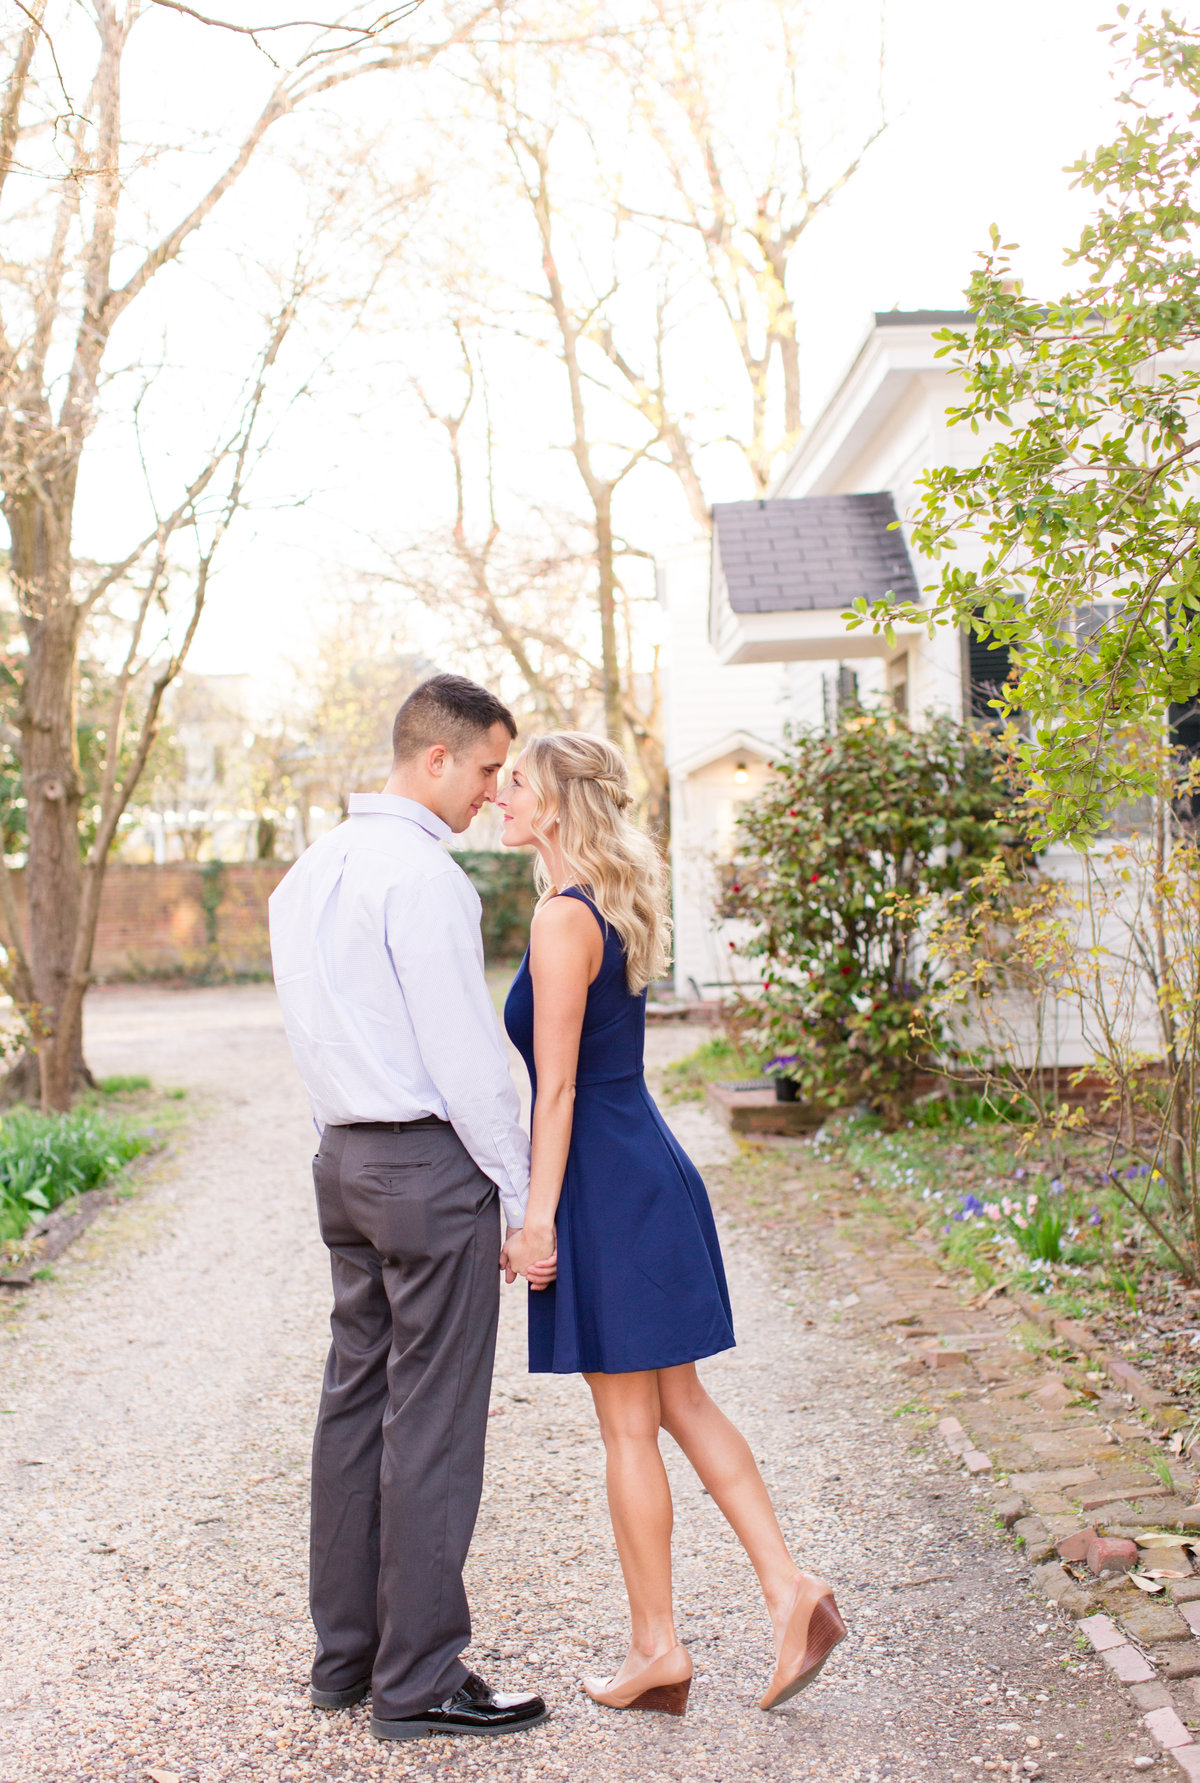 Downtown Fredericksburg engagement photography by Marie Hamilton Photography